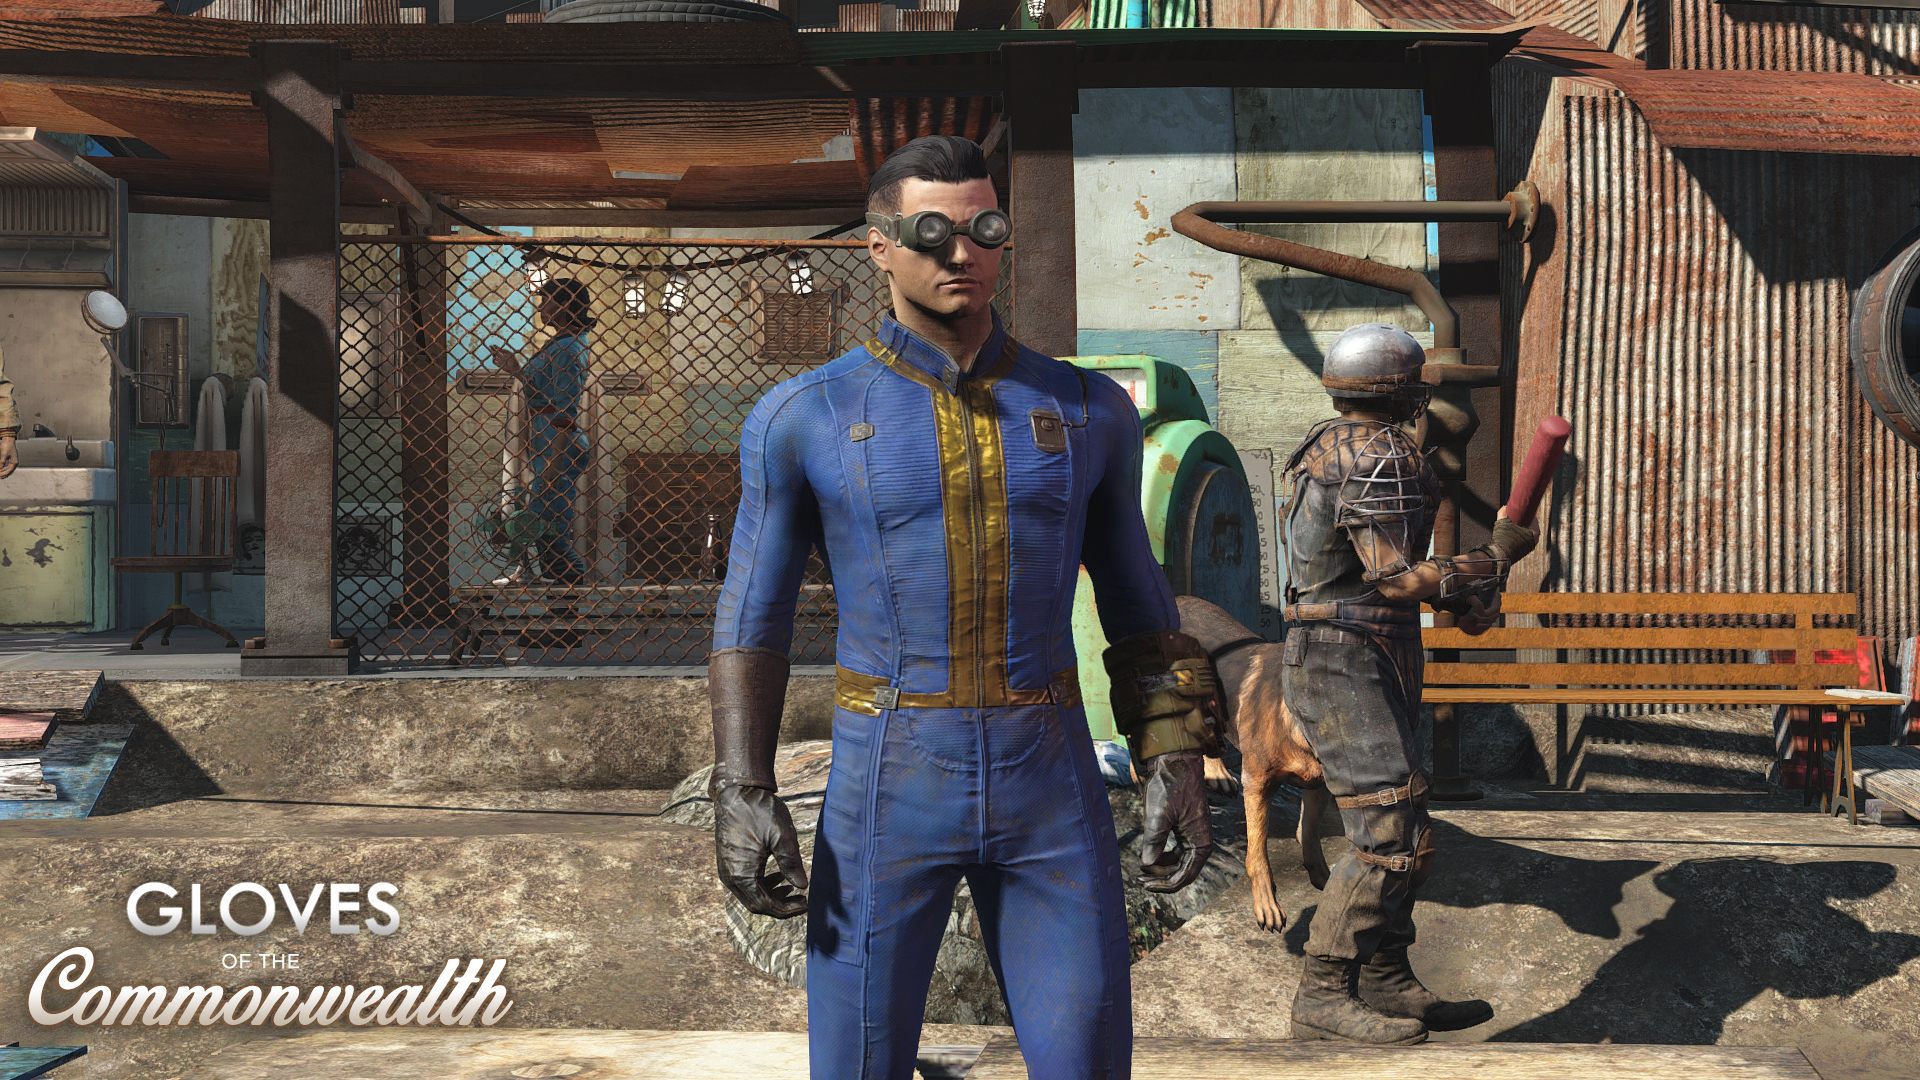 Pin Armored Vault 13 Jumpsuit Images To Pinterest